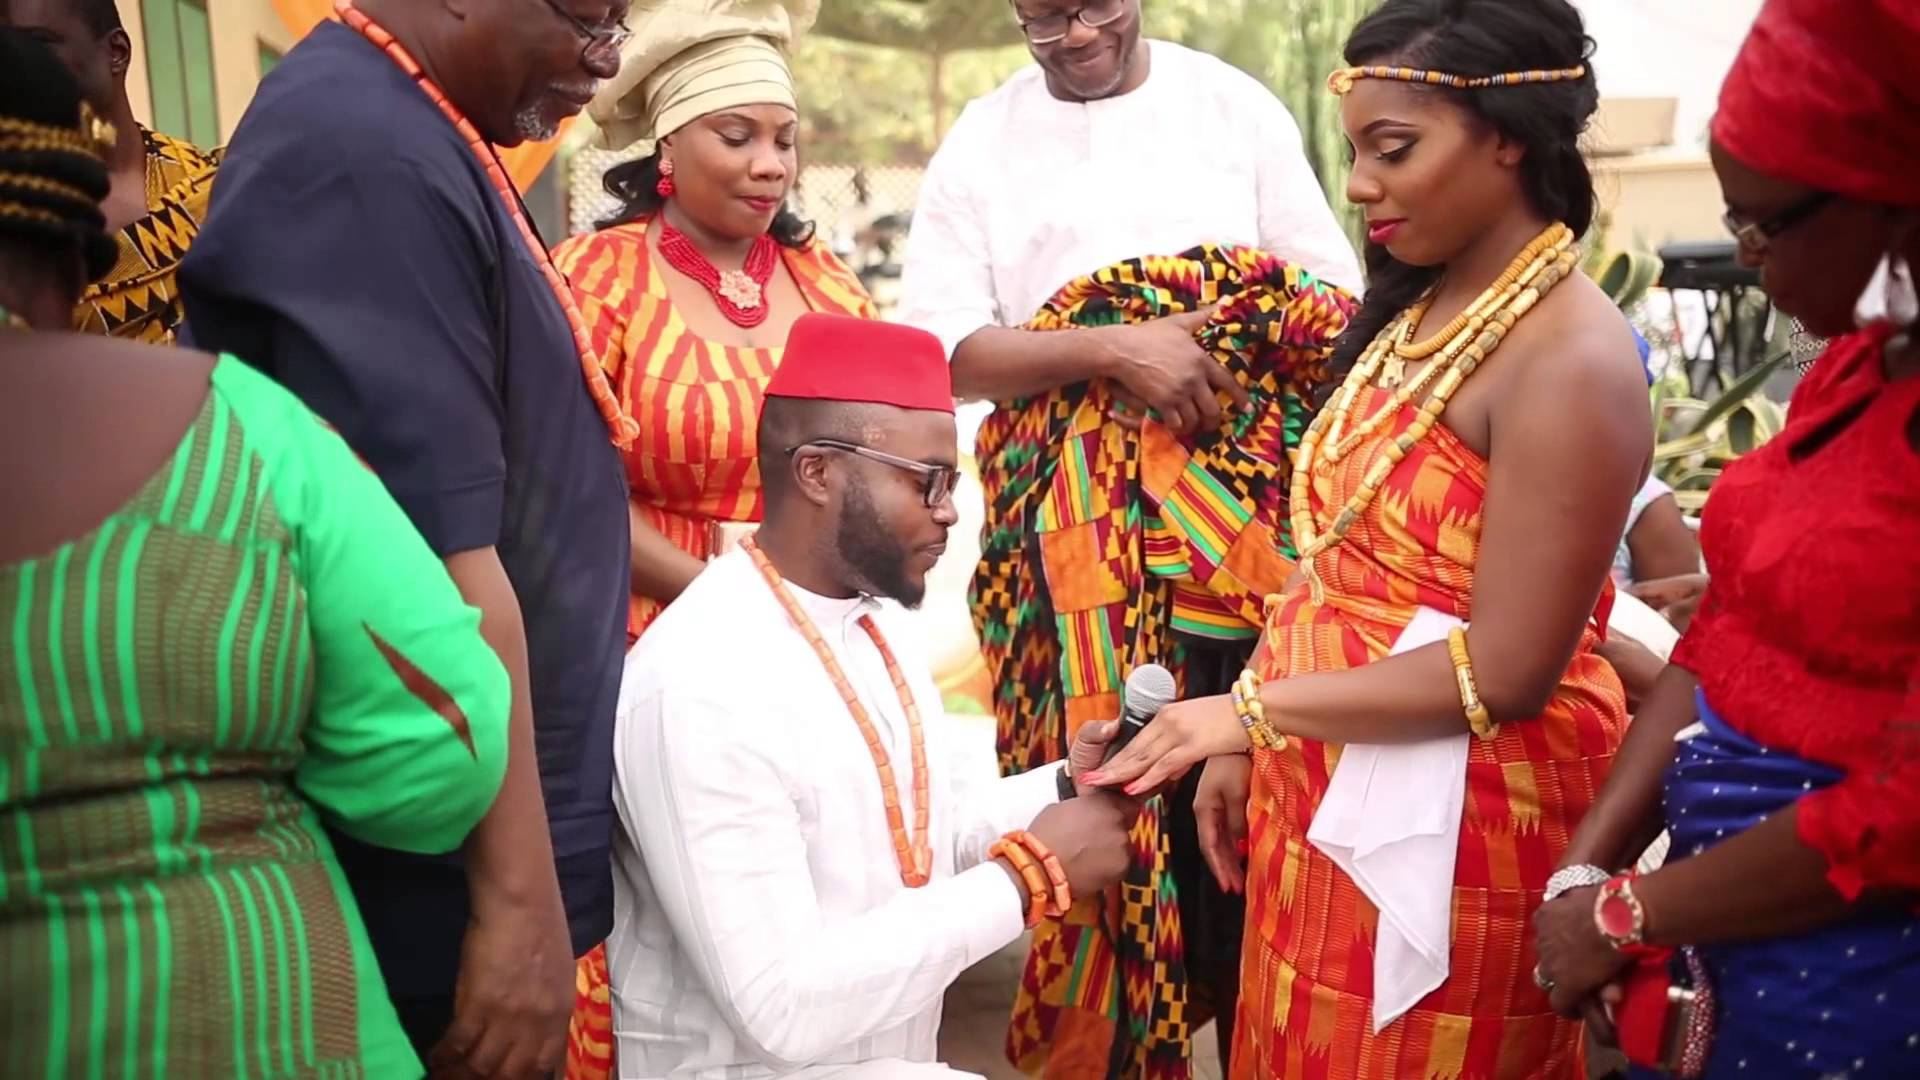 See The Outrageous Engagement List Given To A Prospective Nigerian Groom